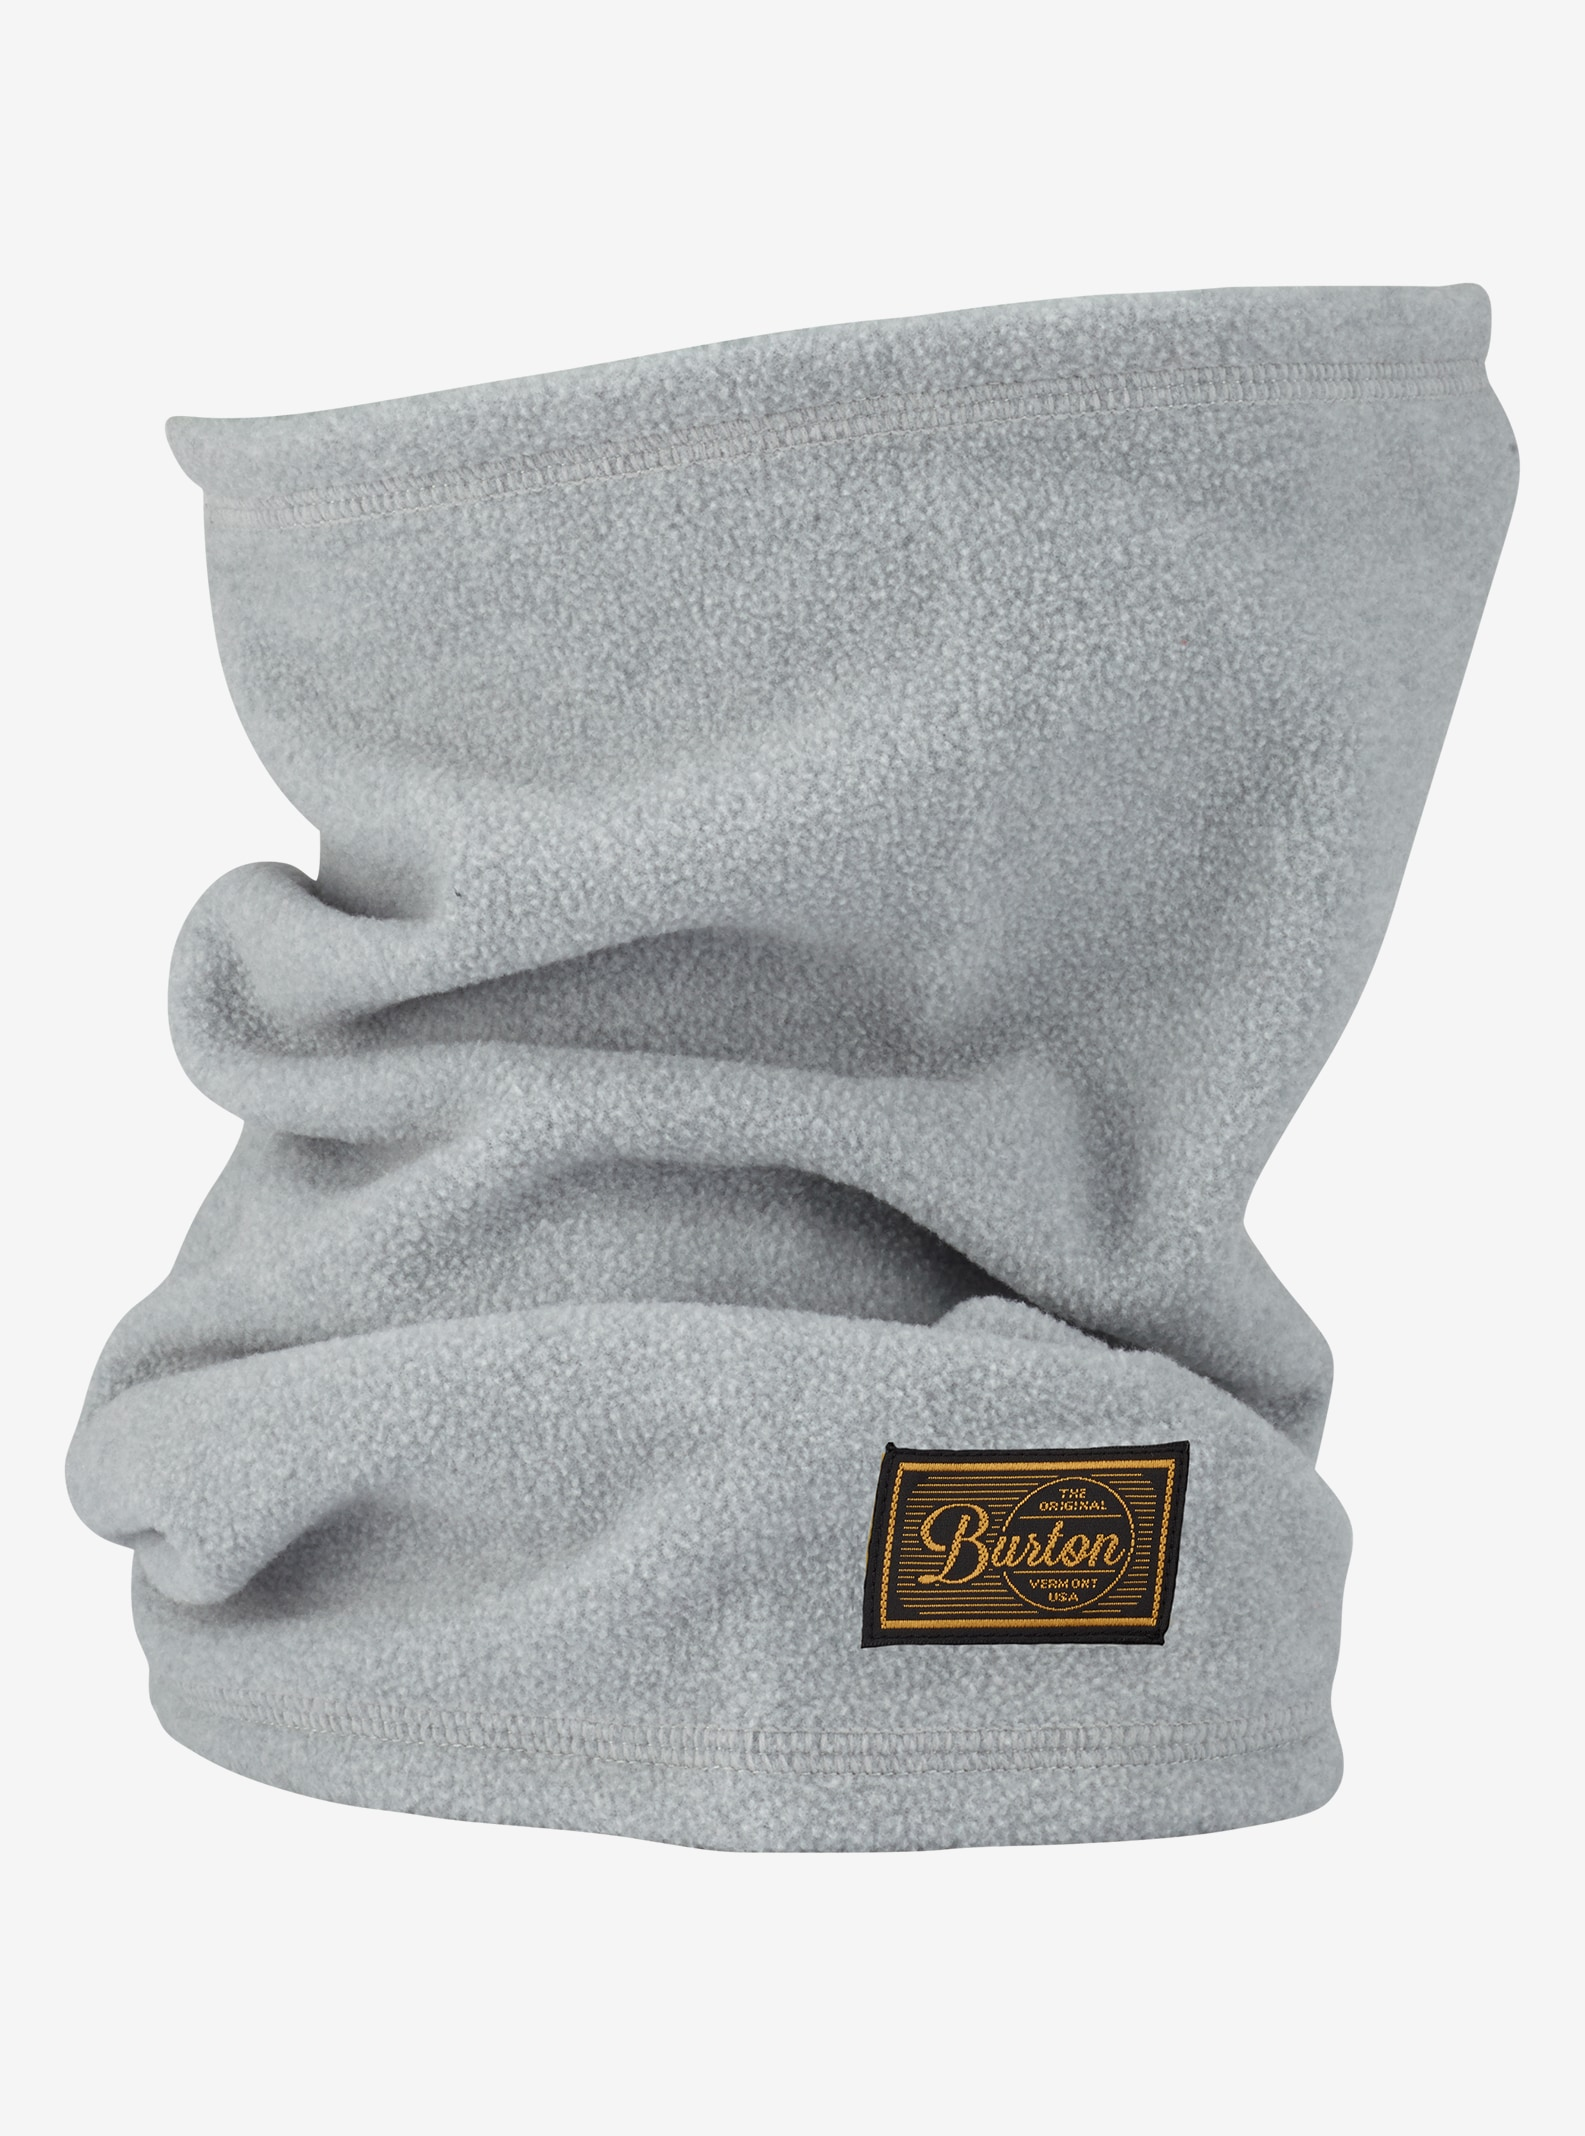 Burton Ember Fleece Neck Warmer shown in Monument Heather